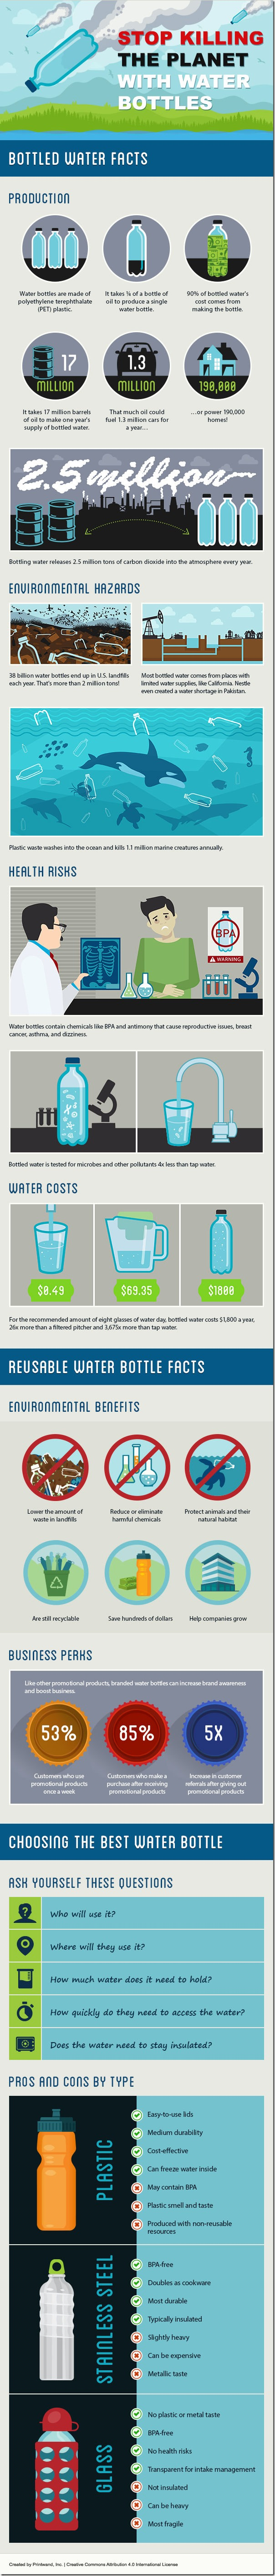 plastic-water-bottle-pollution-infographic-facts-environmental-effects-2